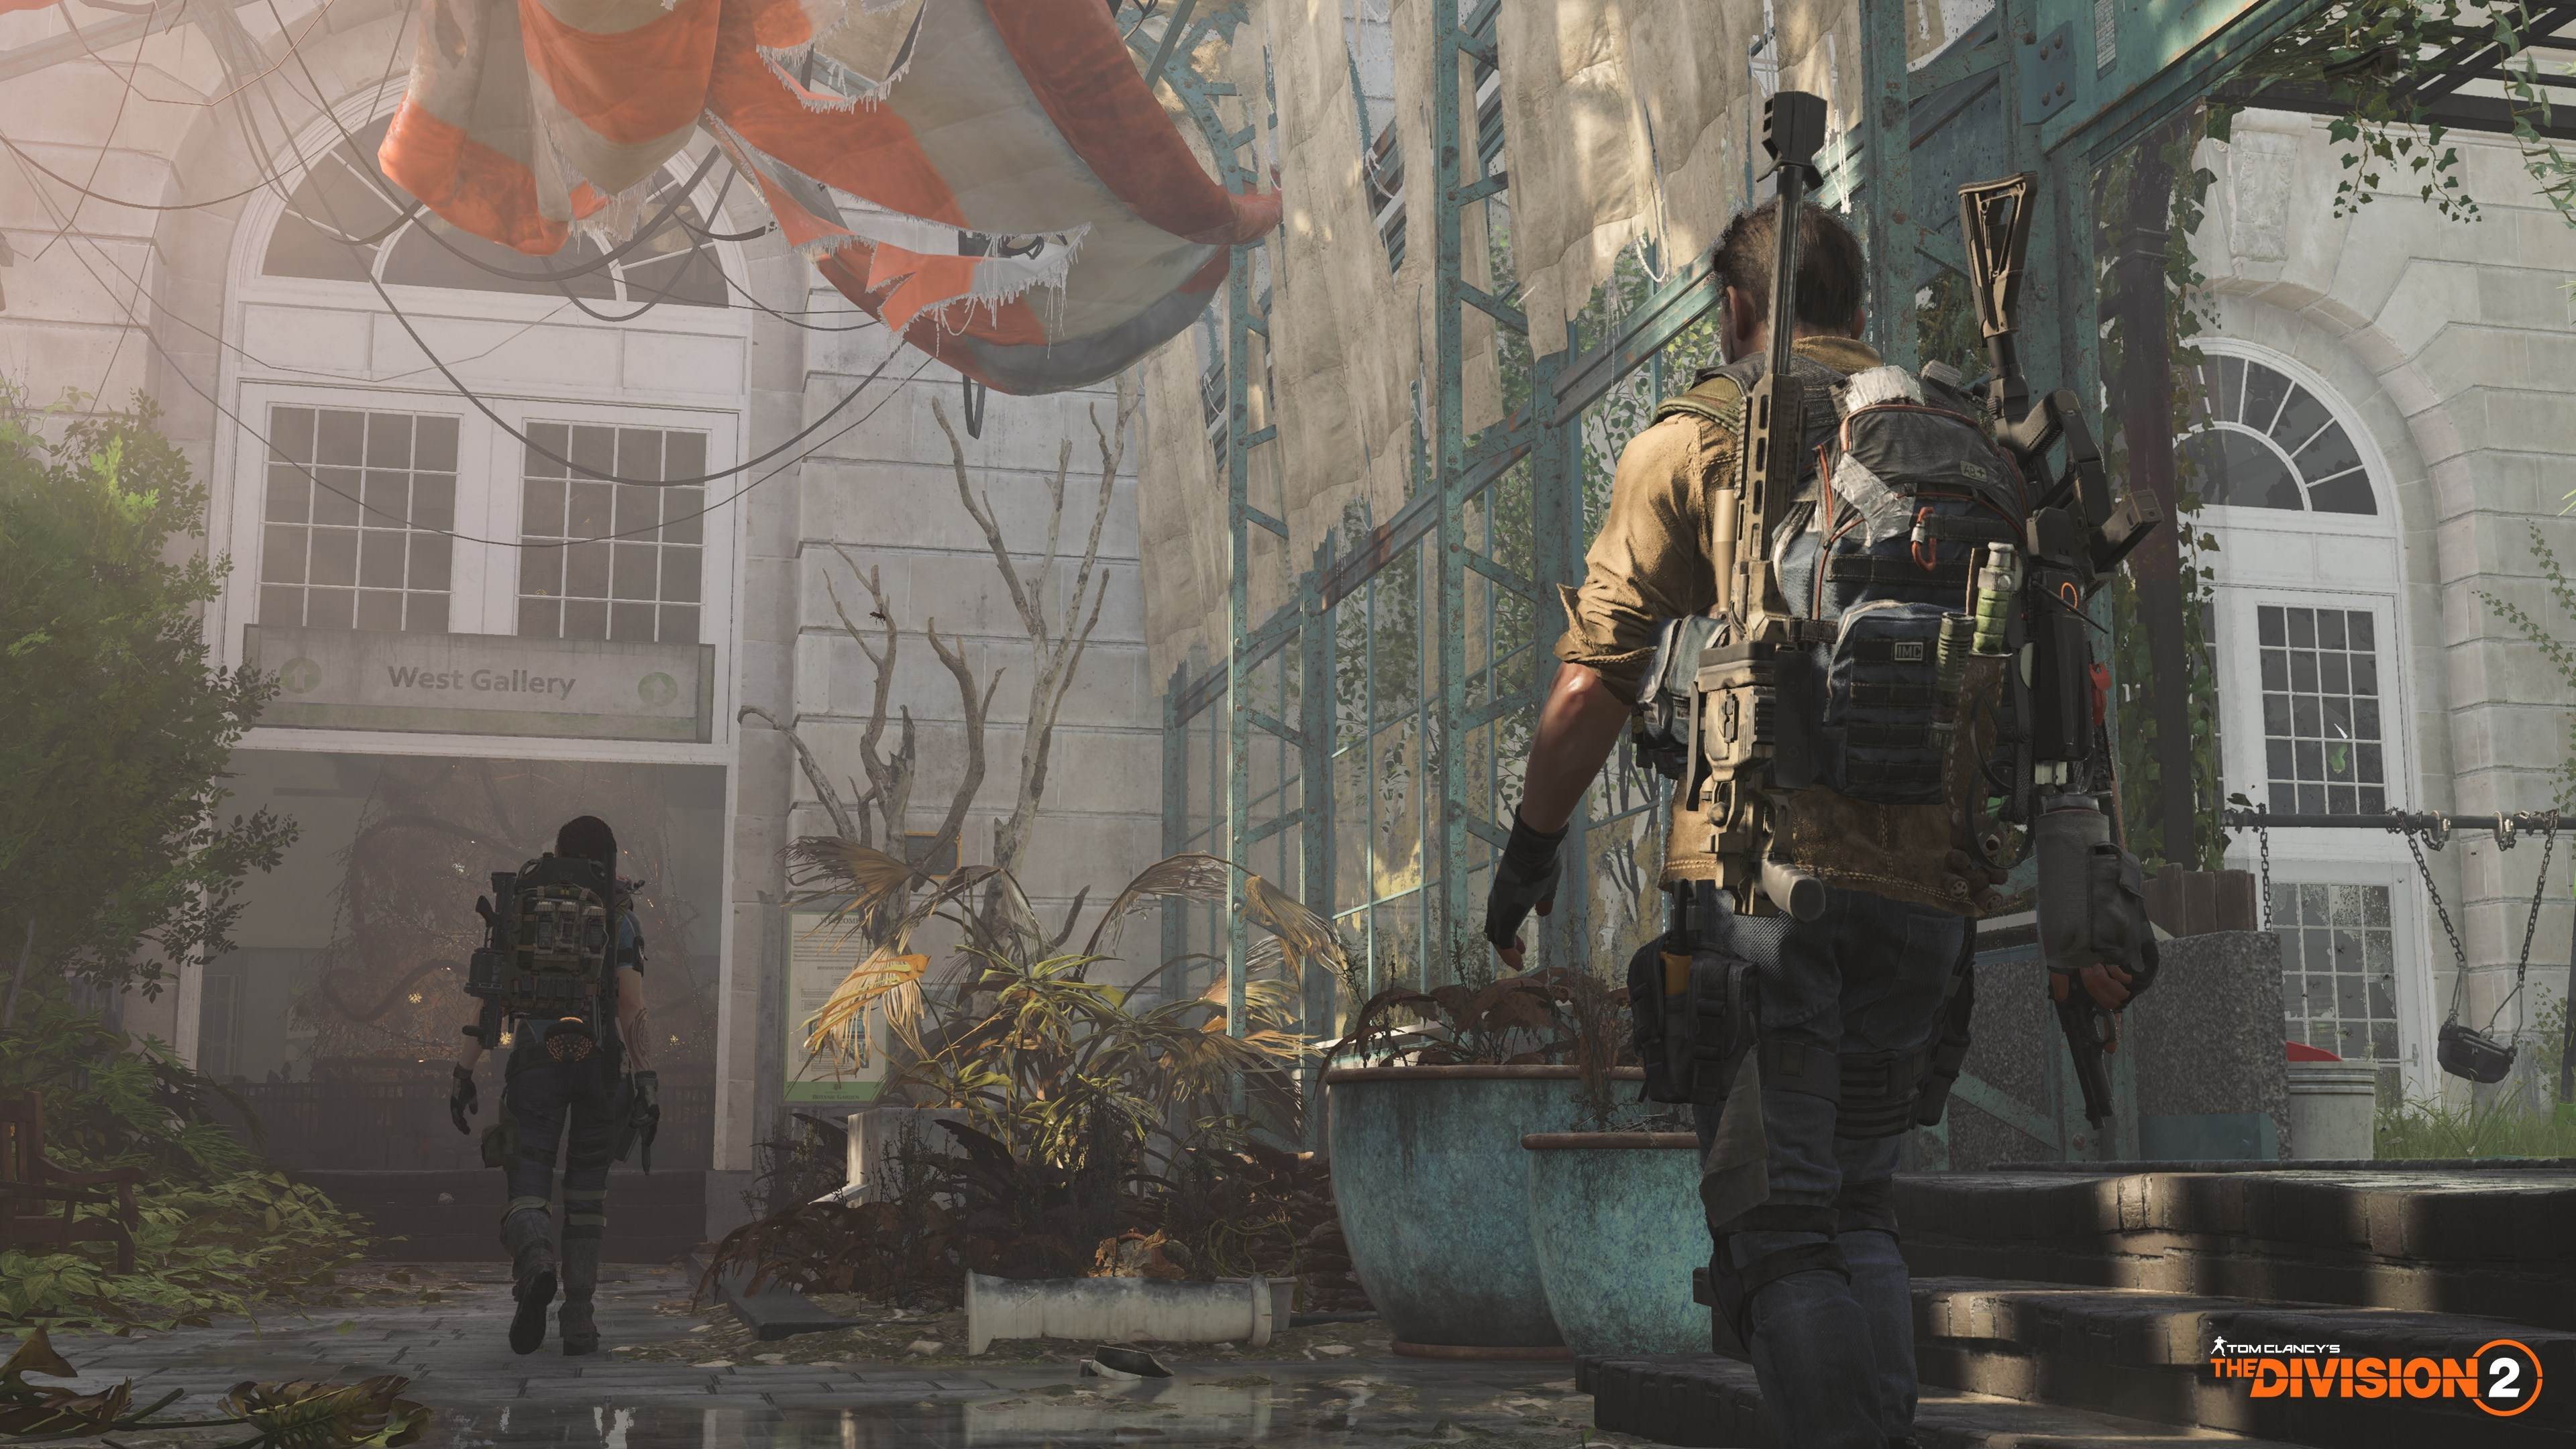 The-division-2-New-Screenshots-1